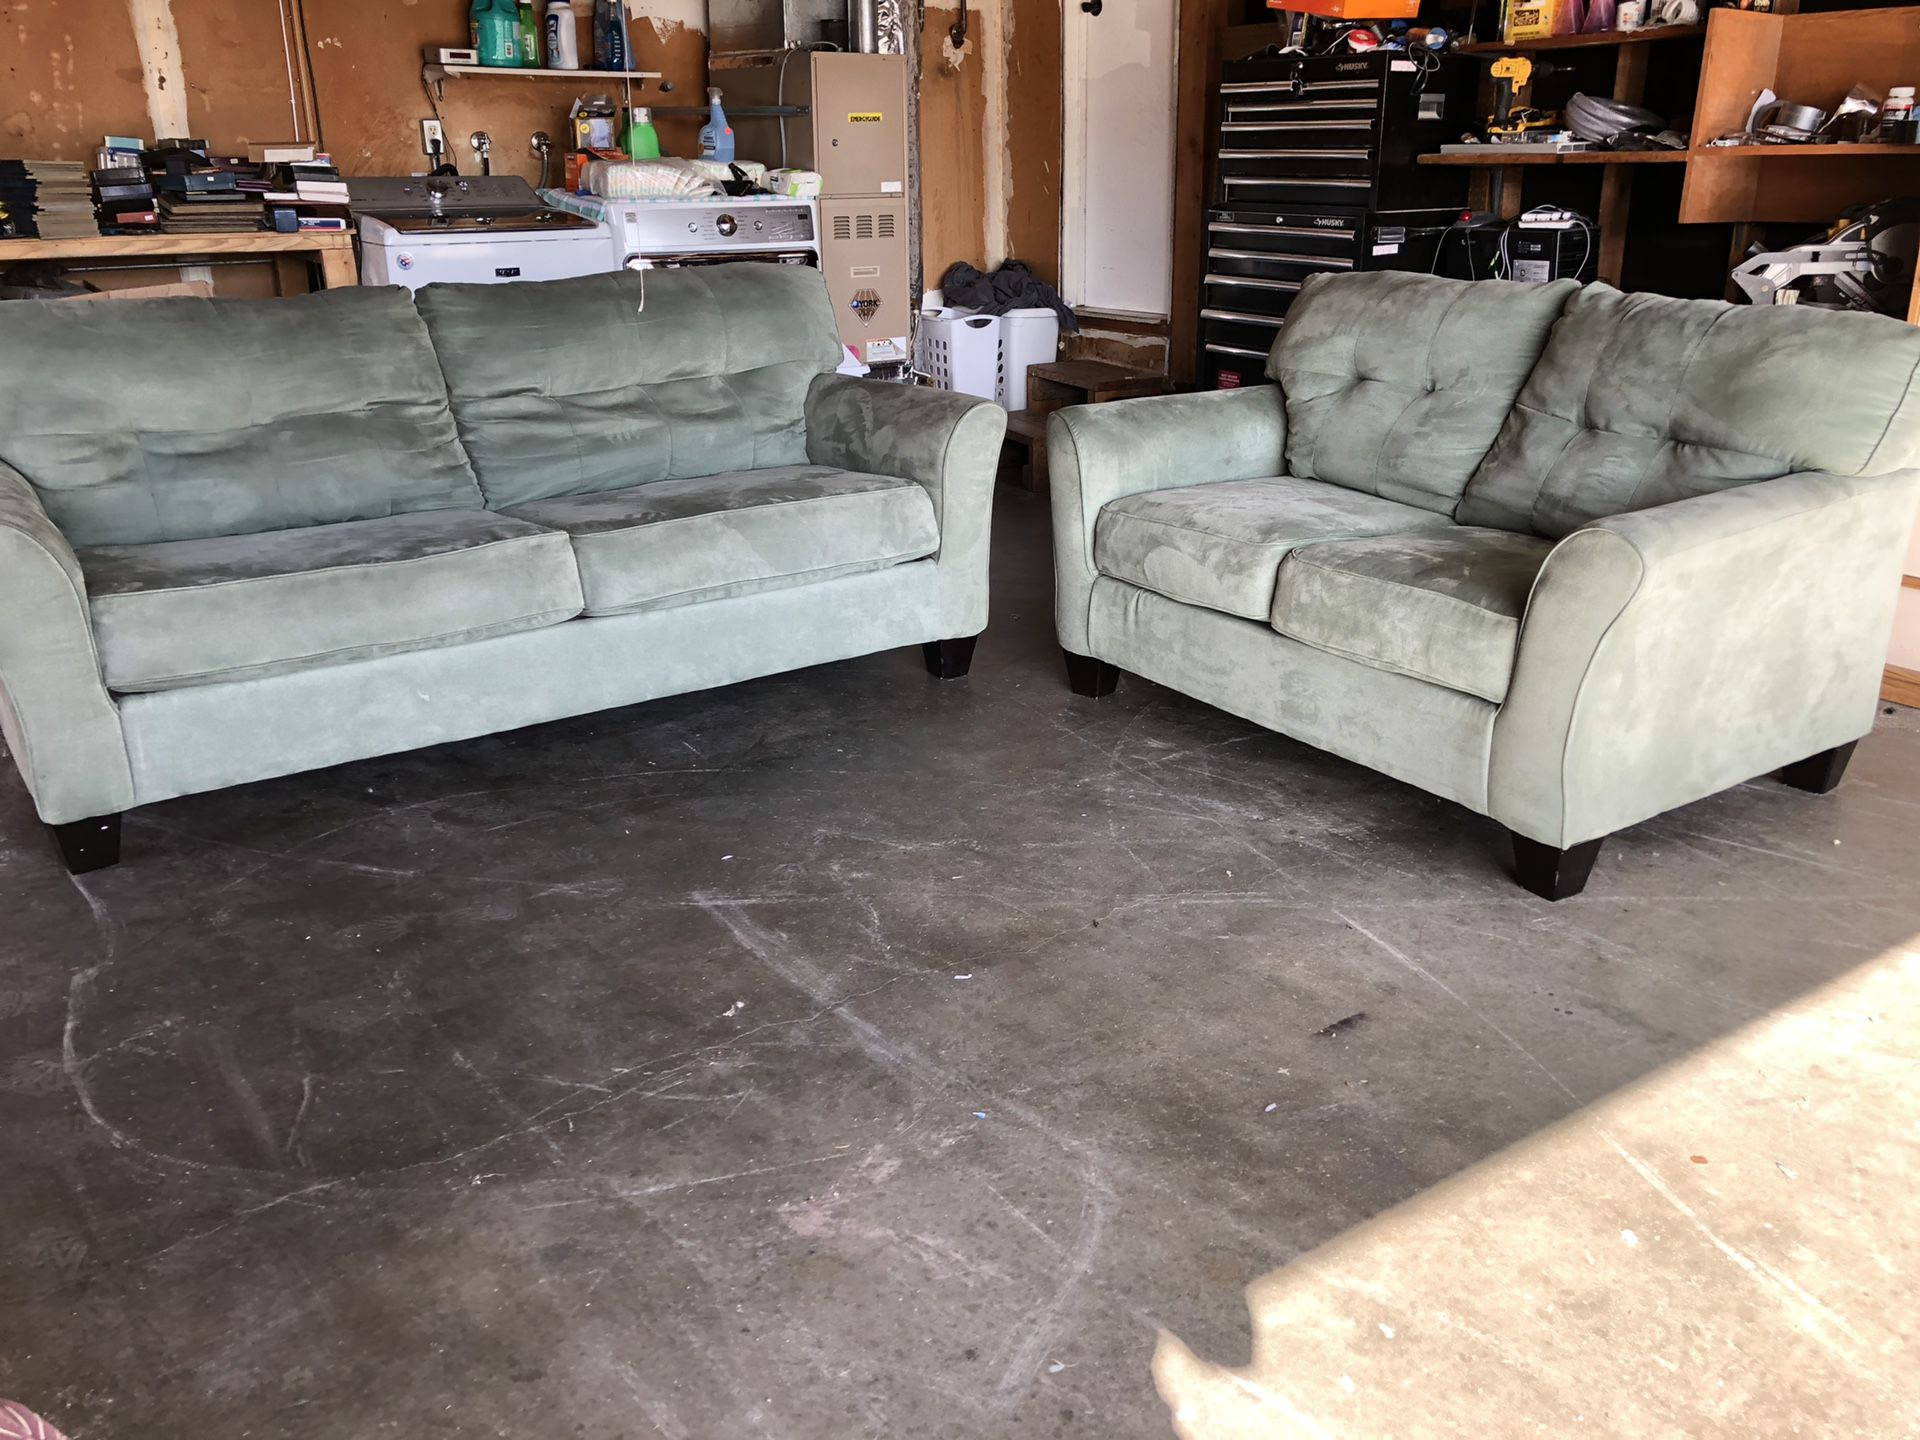 Gorgeous seafoam colored couch & loveseat